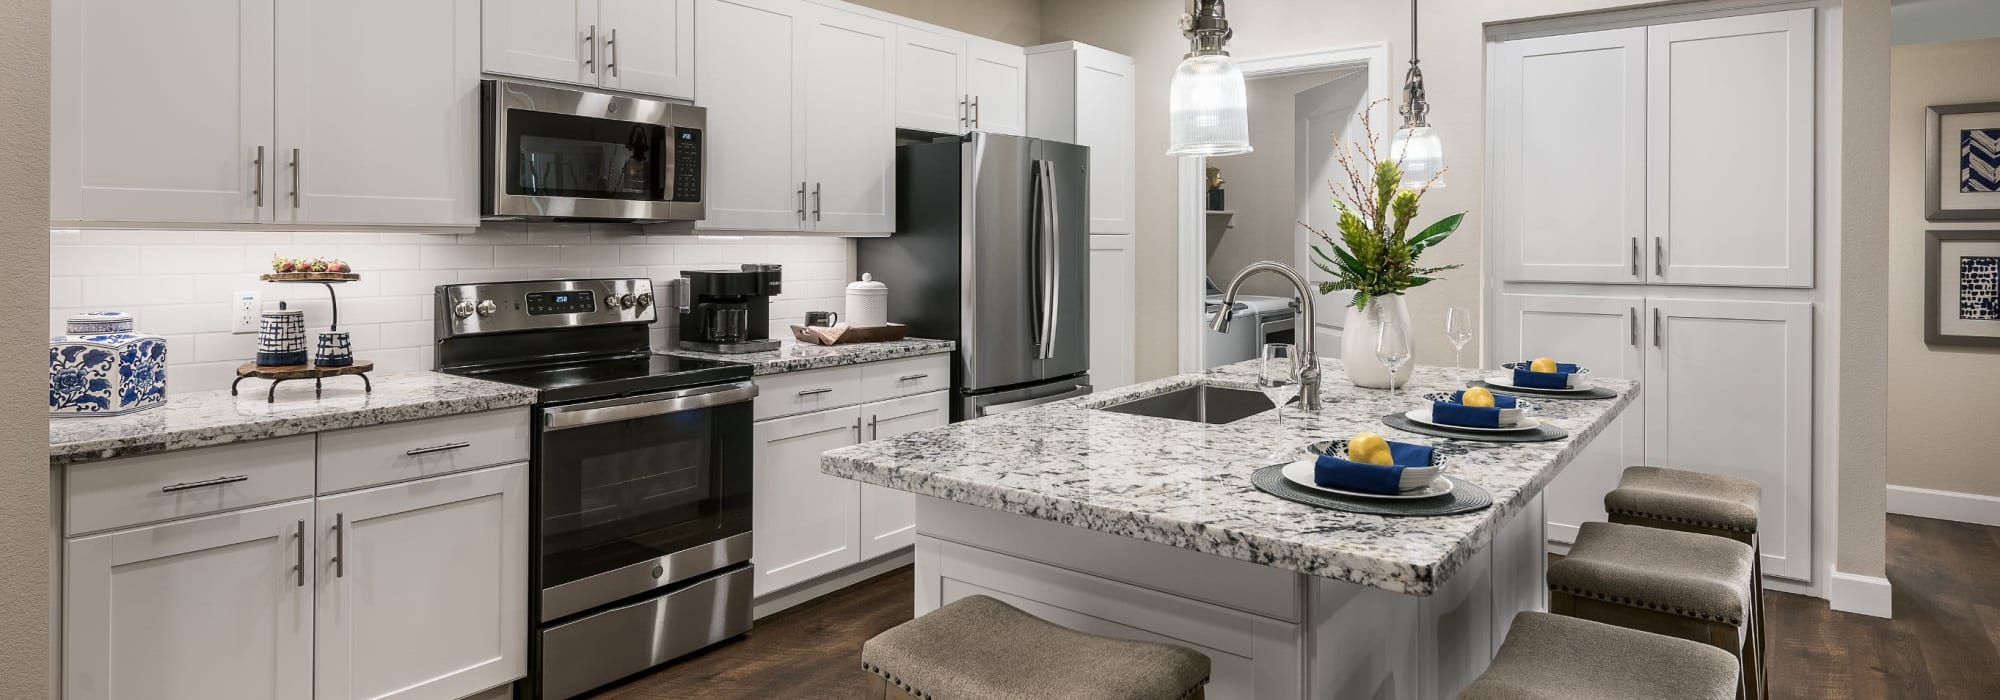 Bright kitchen with an island at San Artes in Scottsdale, Arizona